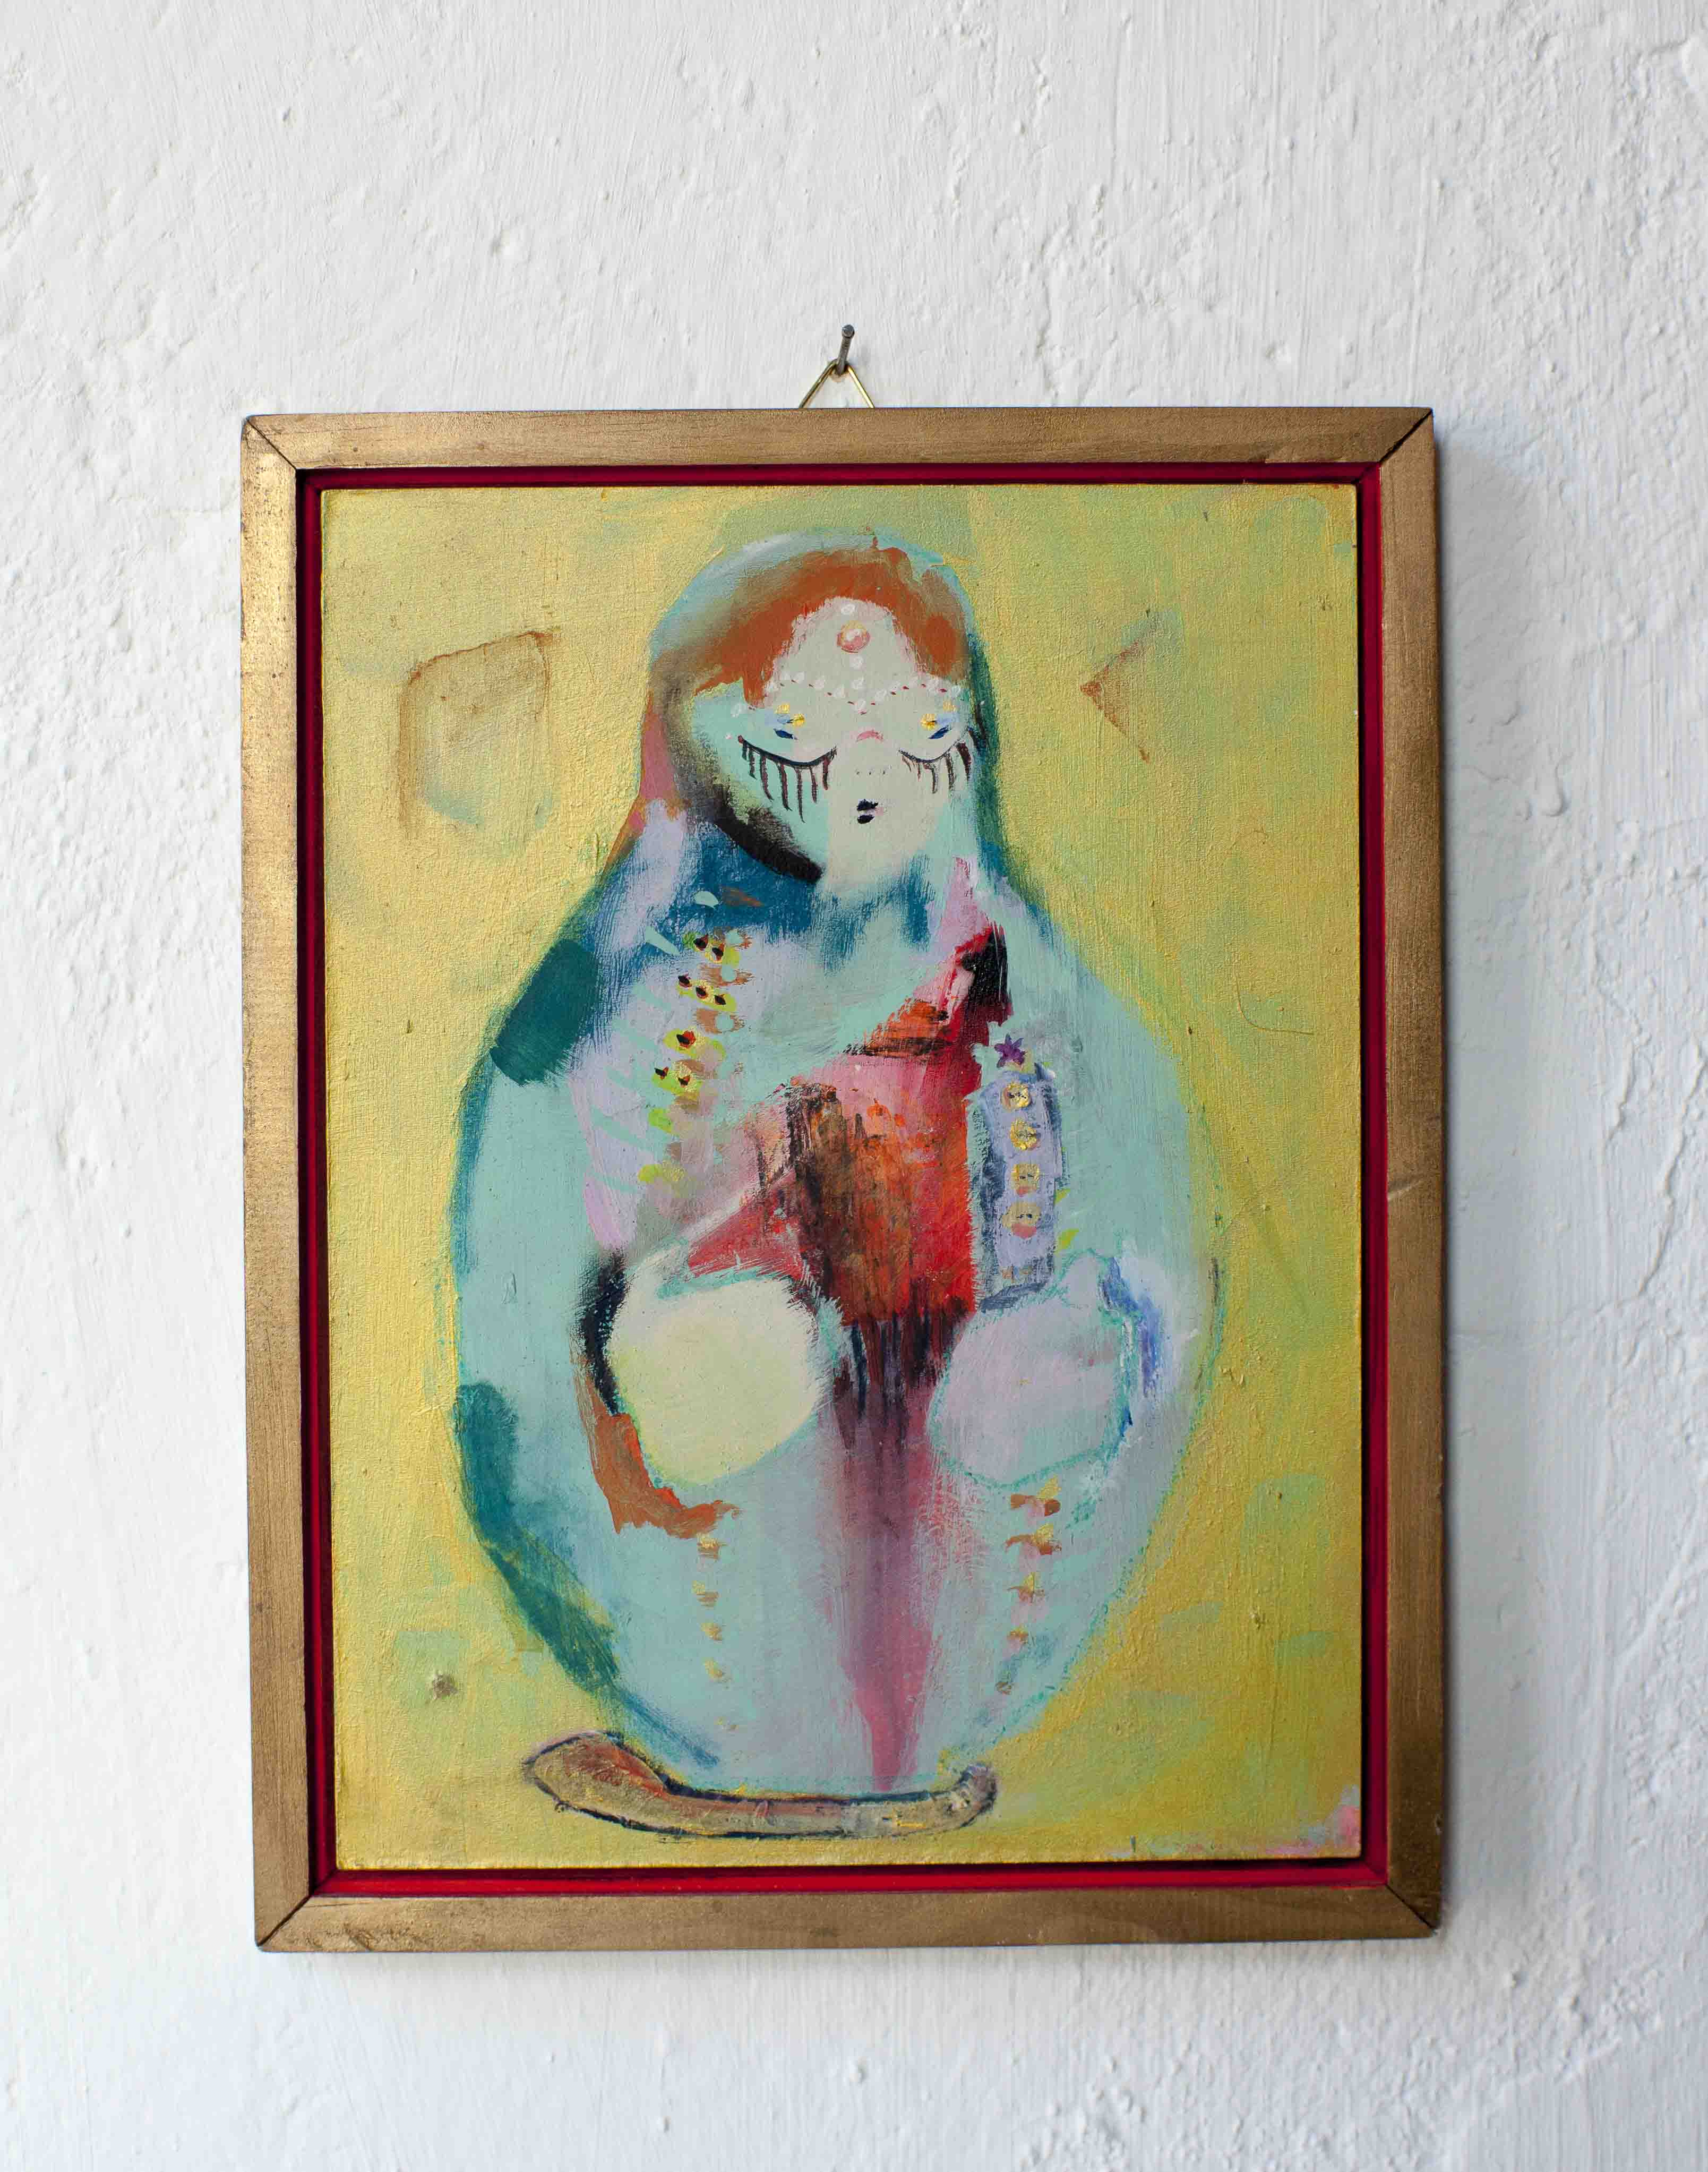 madonna_2013_27x19cm_acryl auf hartfaser, gerahmt